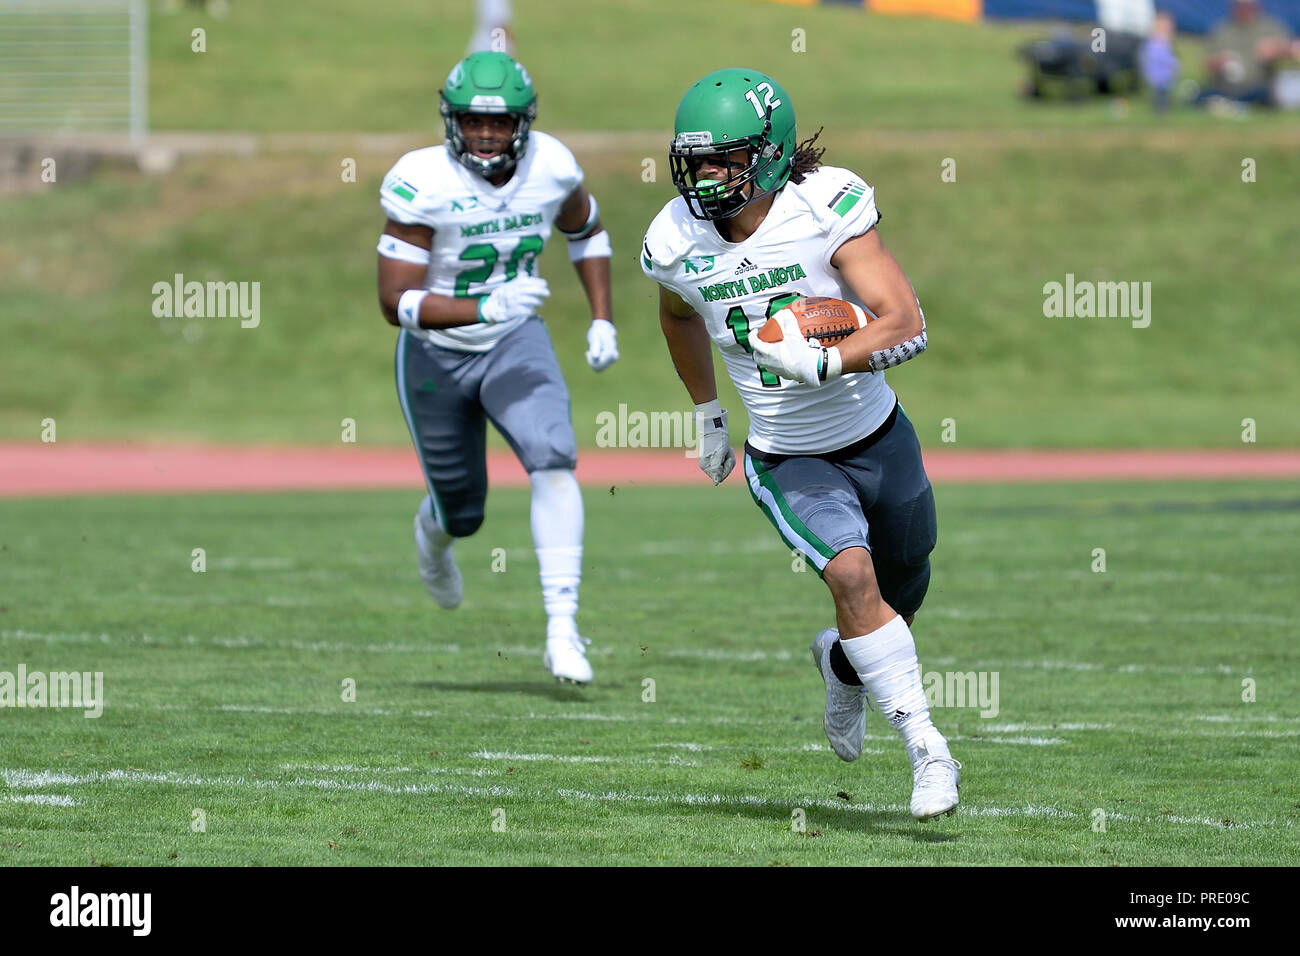 Greeley Co Usa 29th Sep 2018 North Dakota Fighting Hawks